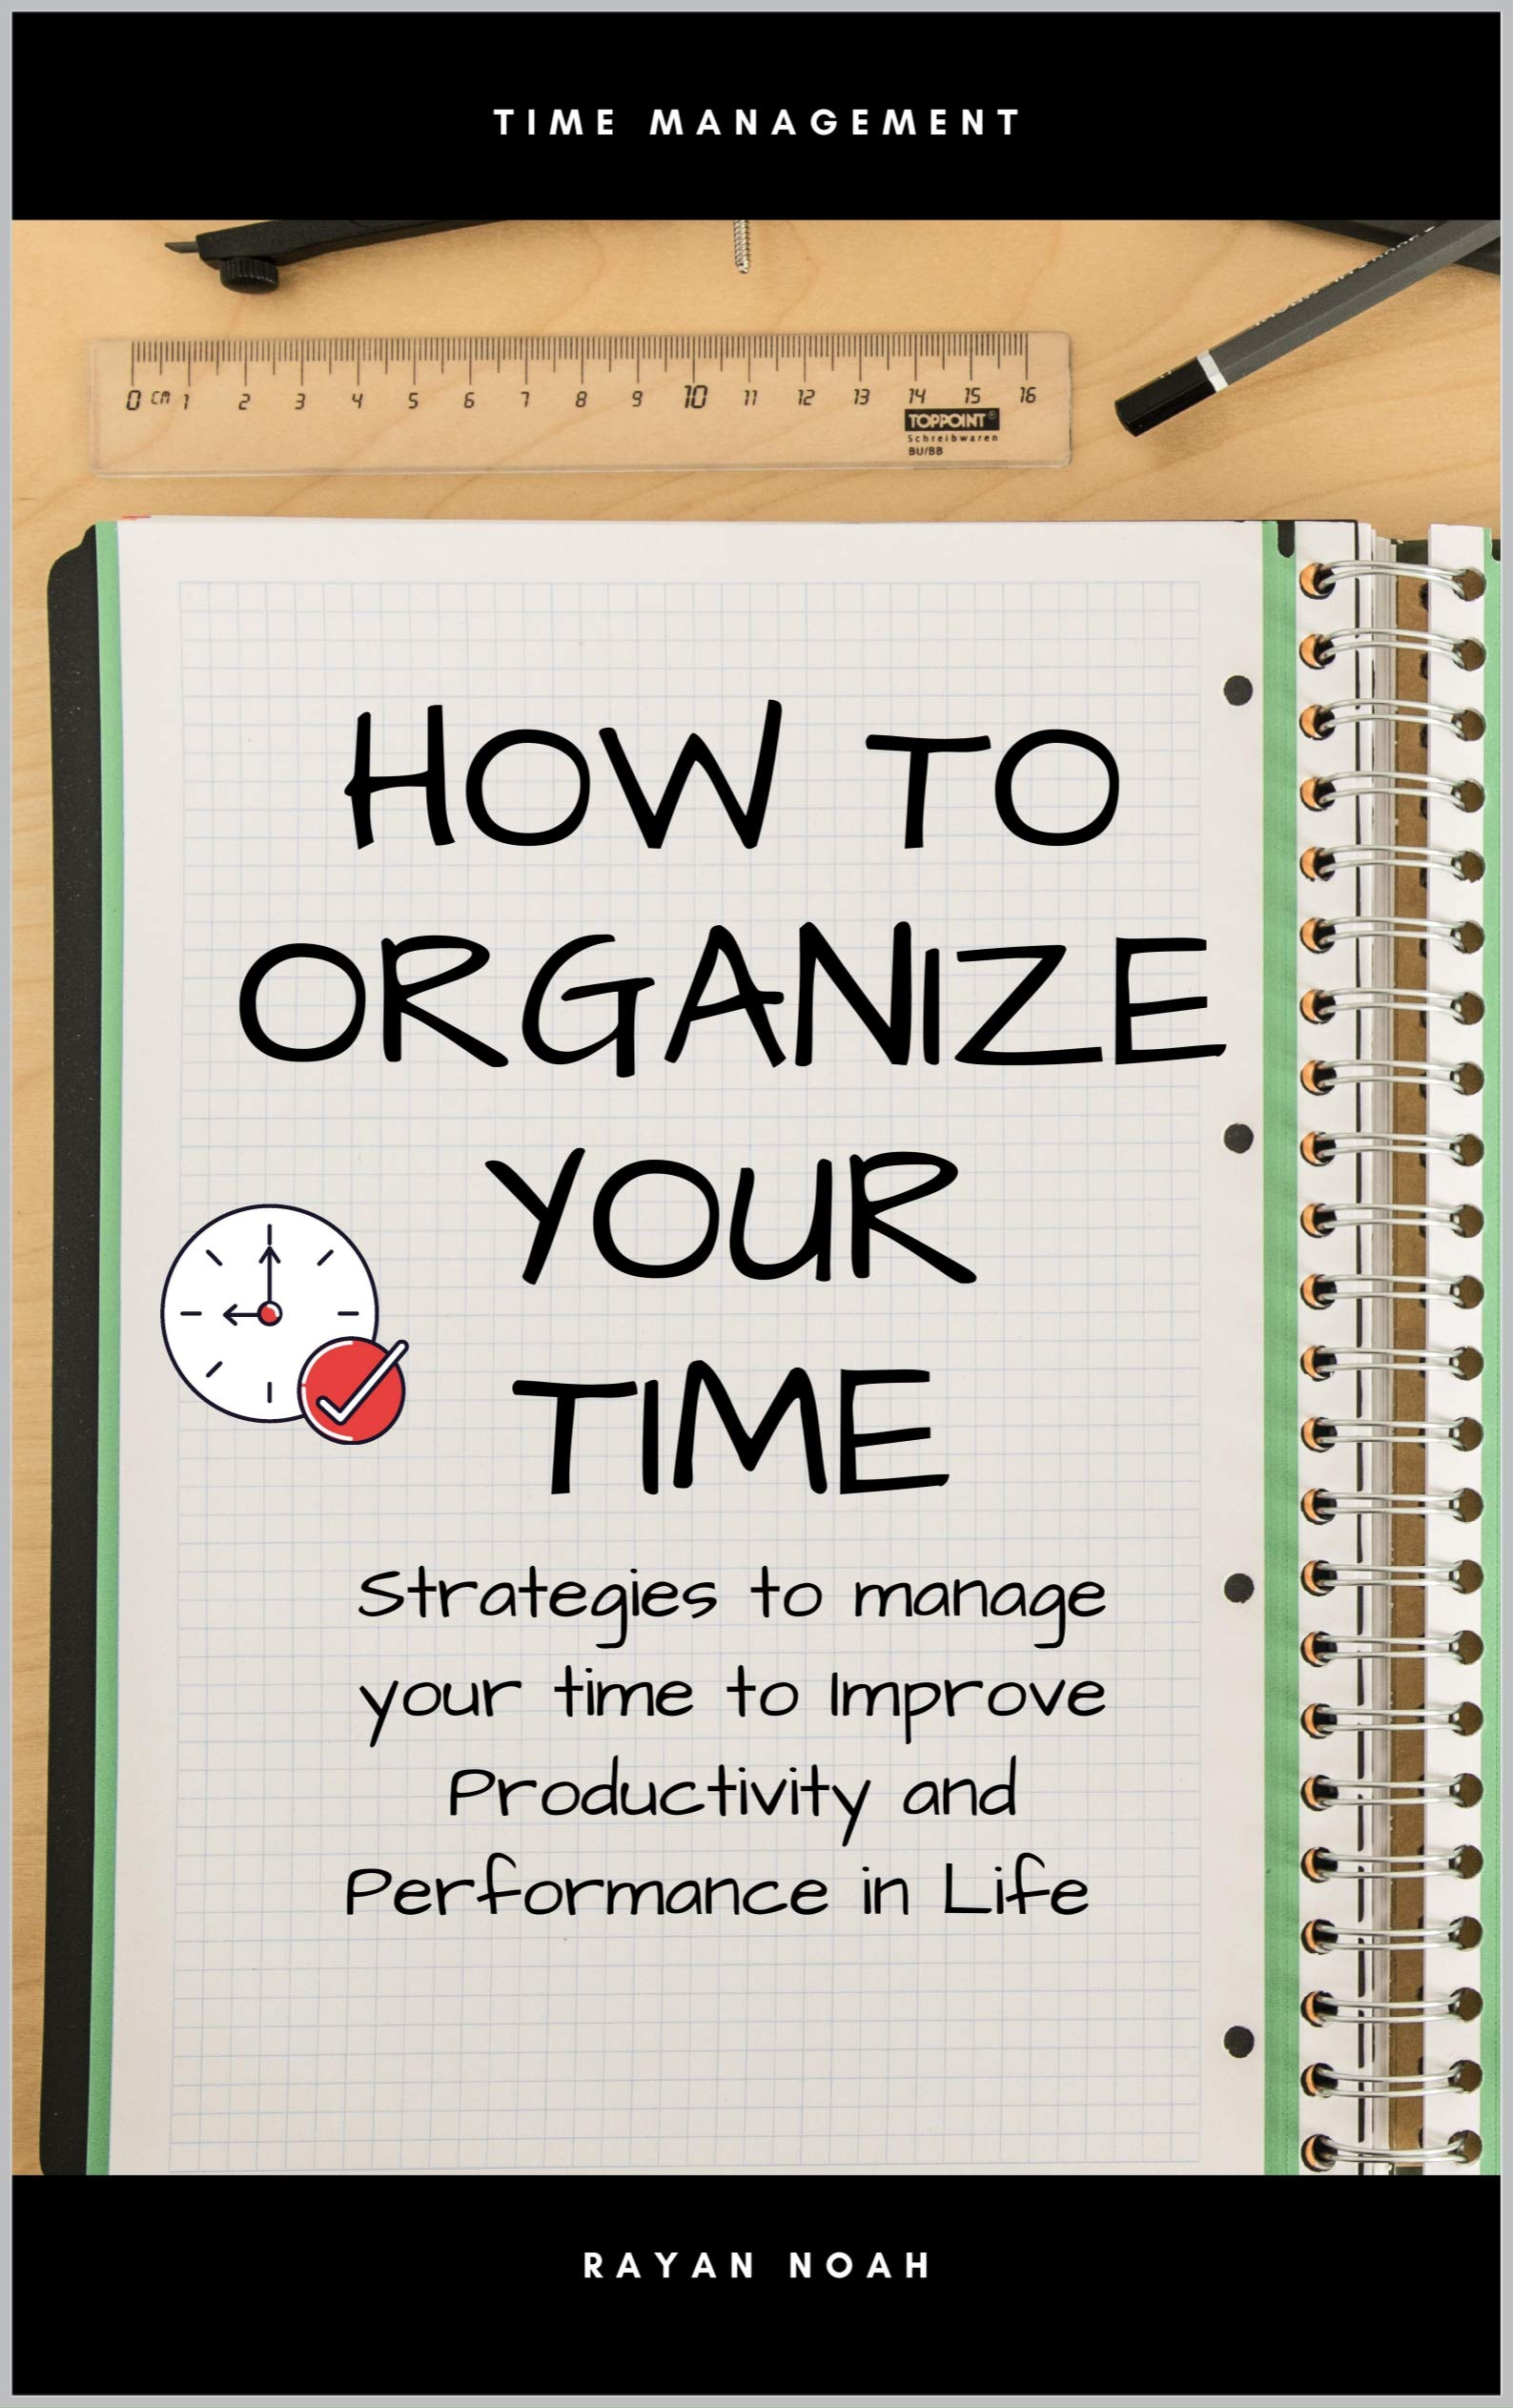 HOW TO ORGANIZE YOUR TIME: Strategies to manage your time to Improve Productivity and Performance in Life